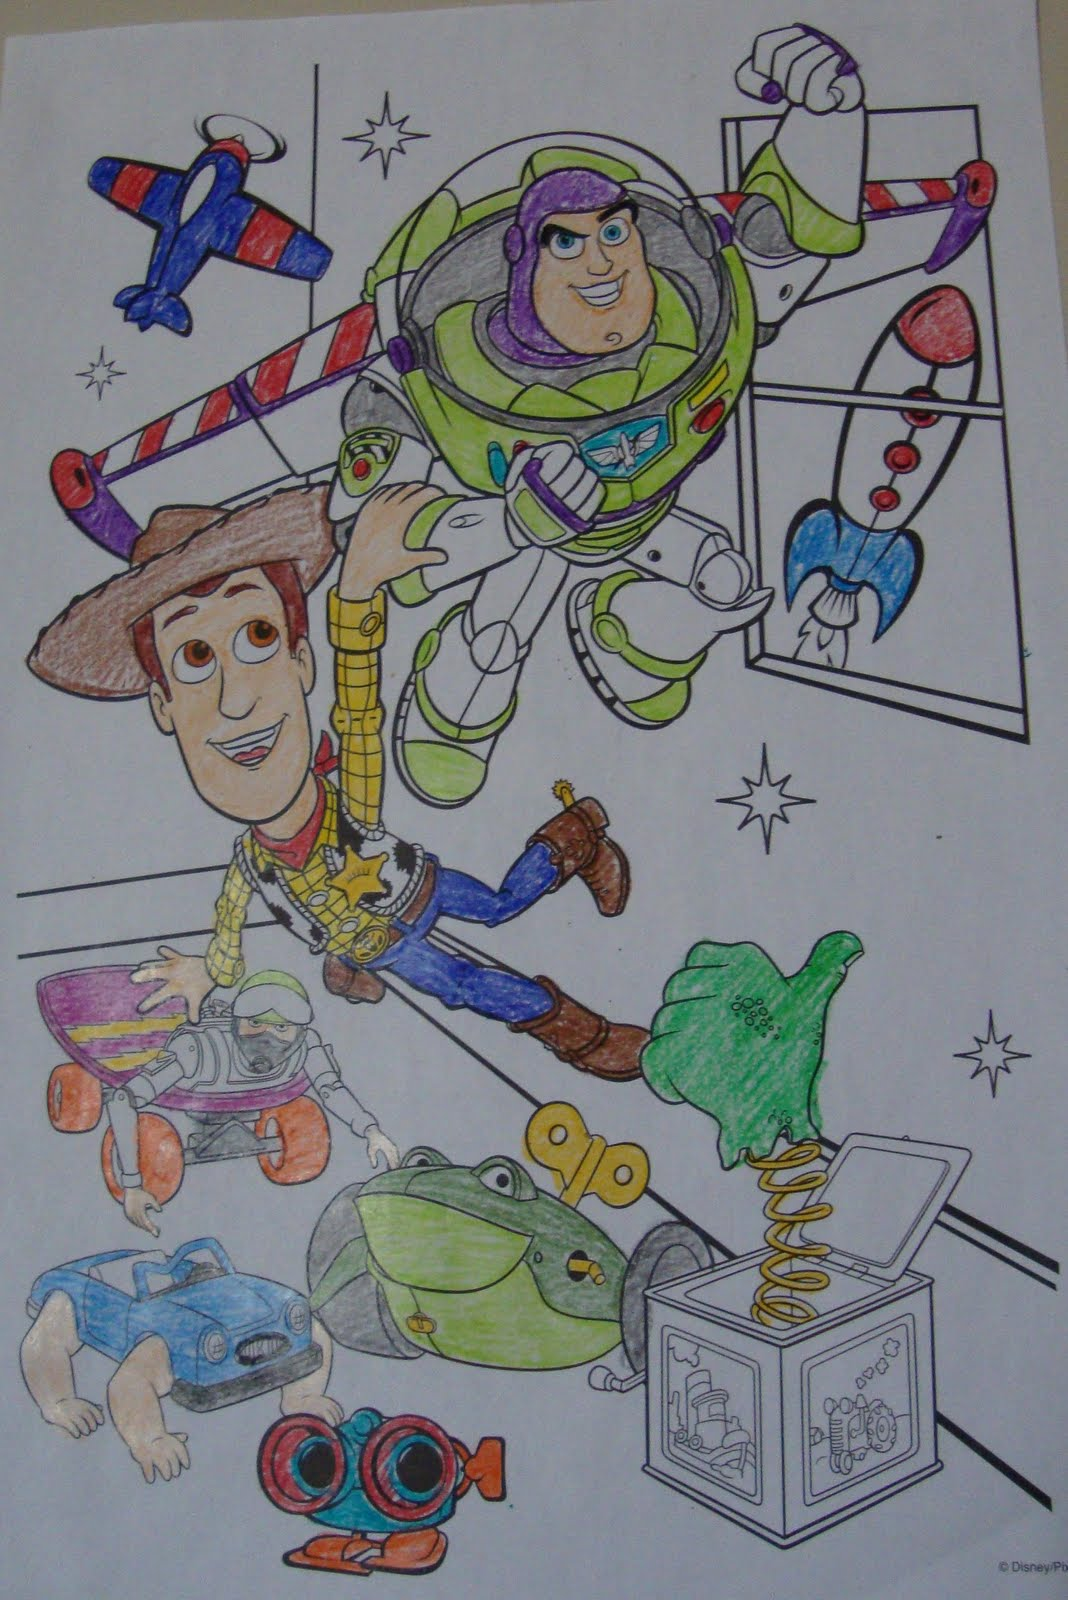 Coloring pages already colored - Toy Story Posters I Colored A Few Sheets Of The Large Toy Story Coloring Pages The Kids Already Had The Kids Were Supposed To Help Color But Were Too